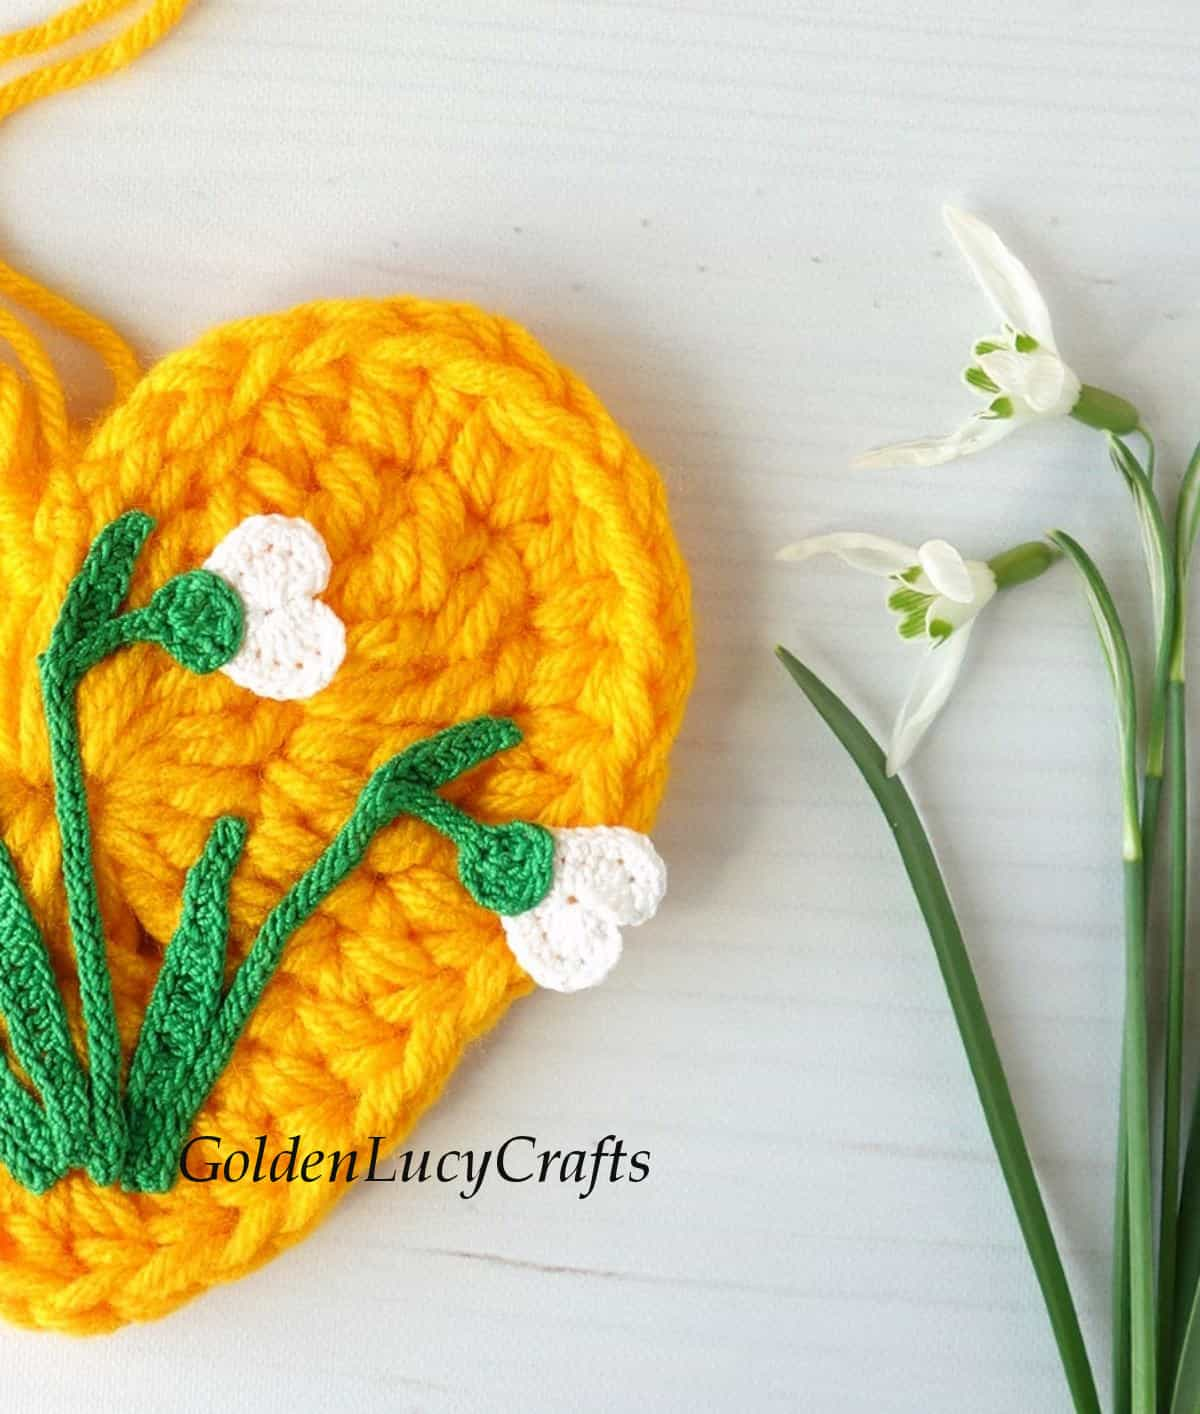 Close up image - half of crocheted yellow heart embellished with snowdrop applique and real snowdrops.